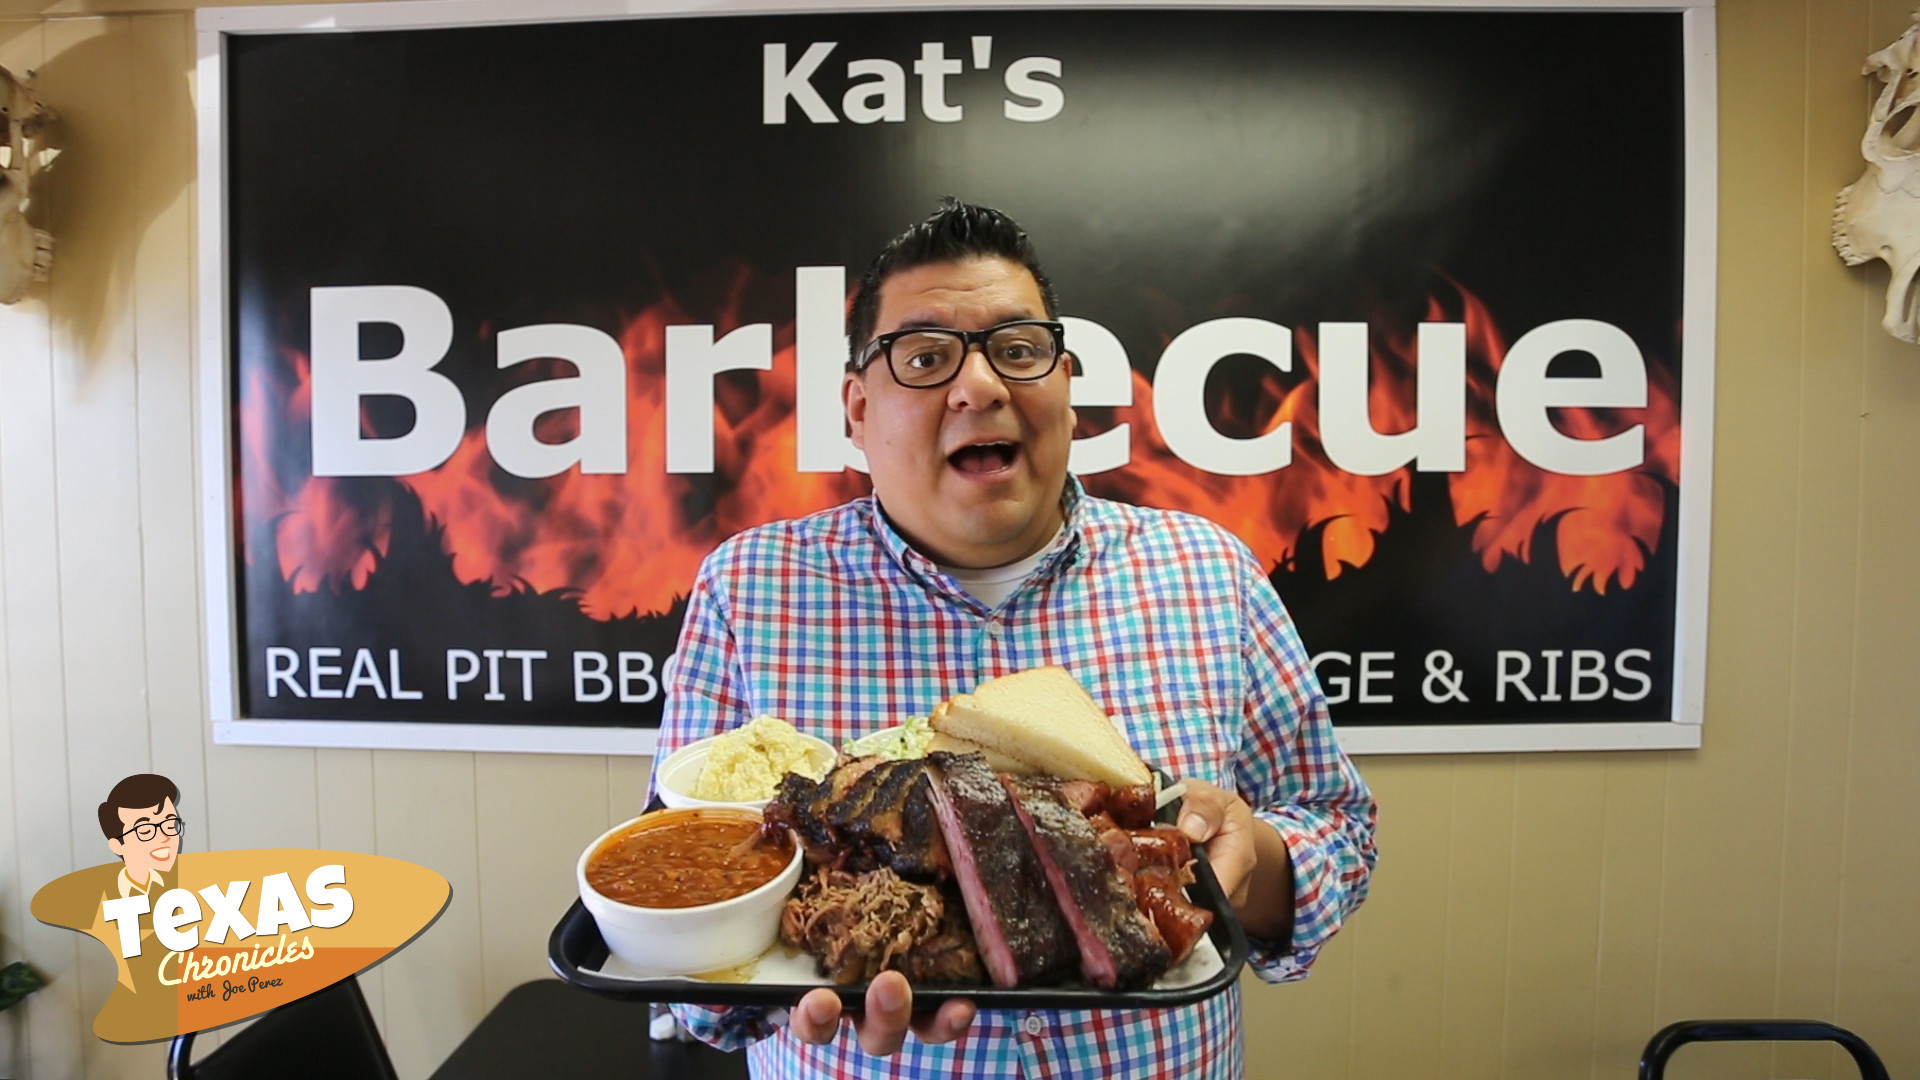 Kat's Barbecue in Santa Fe